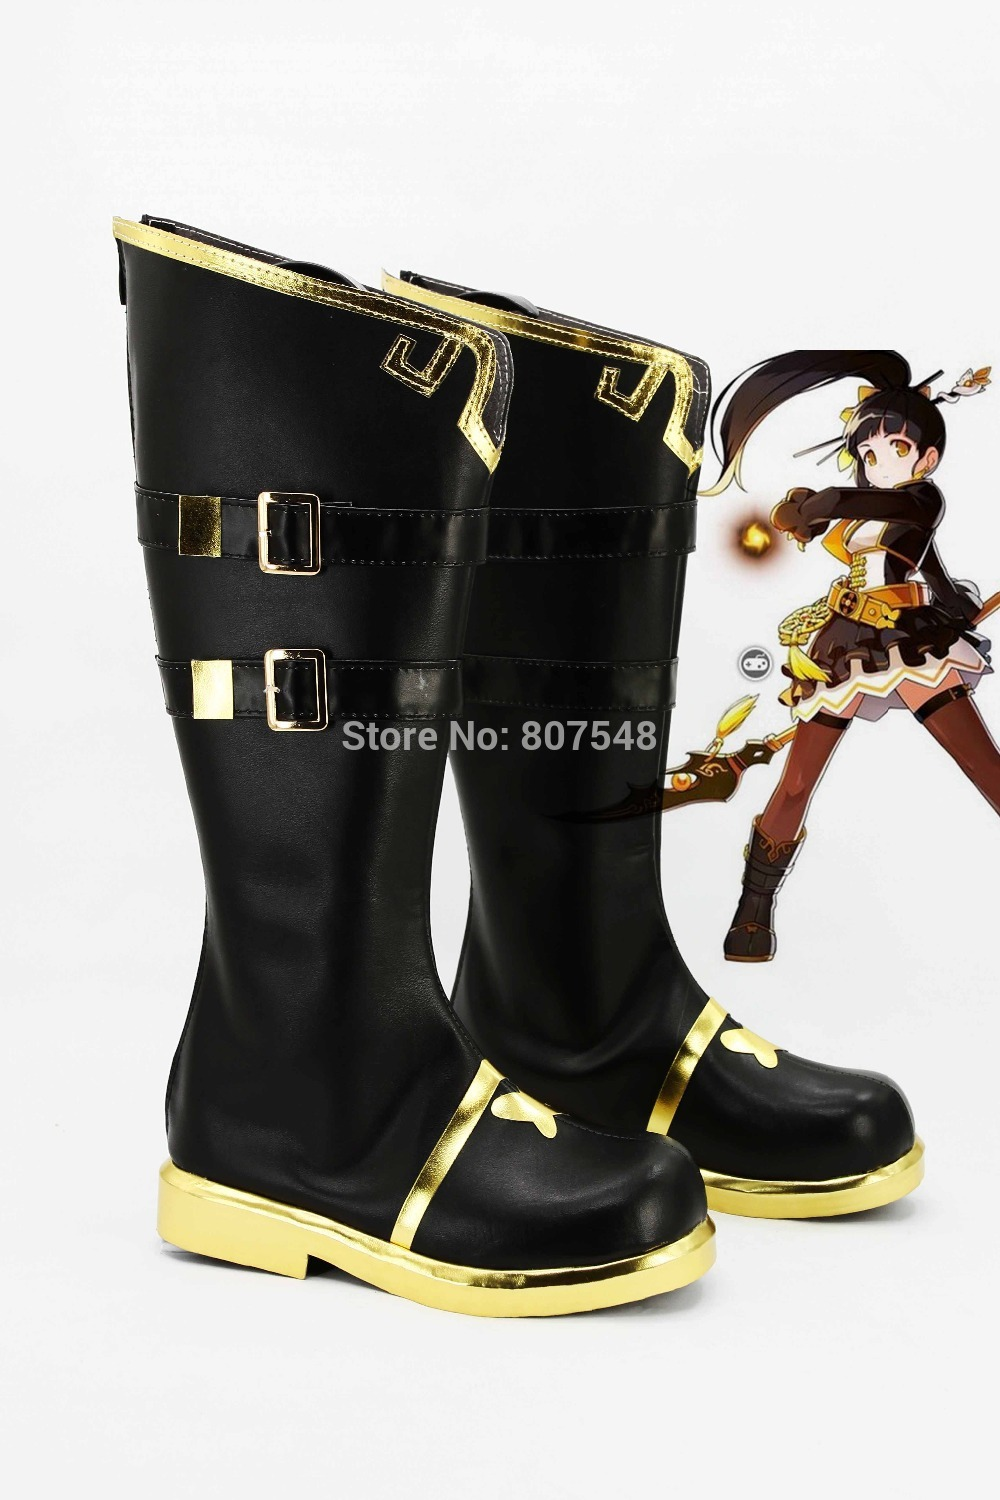 New Arrival Anime ELSWORD Magic Ella Cosplay Women Boots Girls Shoes Custom Knee Length Boots Free Shipping